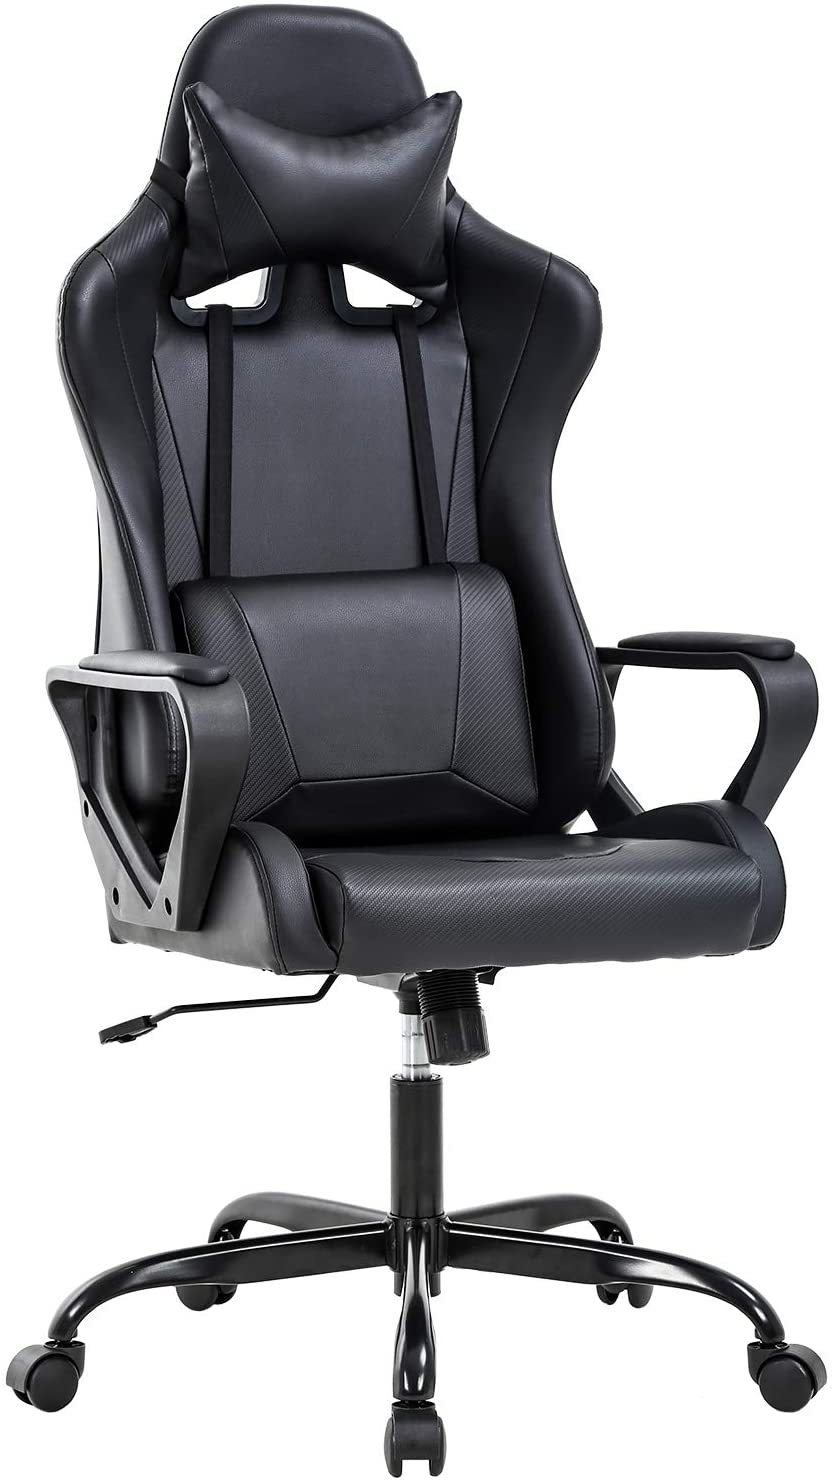 Office Chair Gaming Chair Desk Chair Ergonomic Racing Style Executive Chair with Lumbar Support Adjustable Stool Swivel Rolling Computer Chair for Women,Man